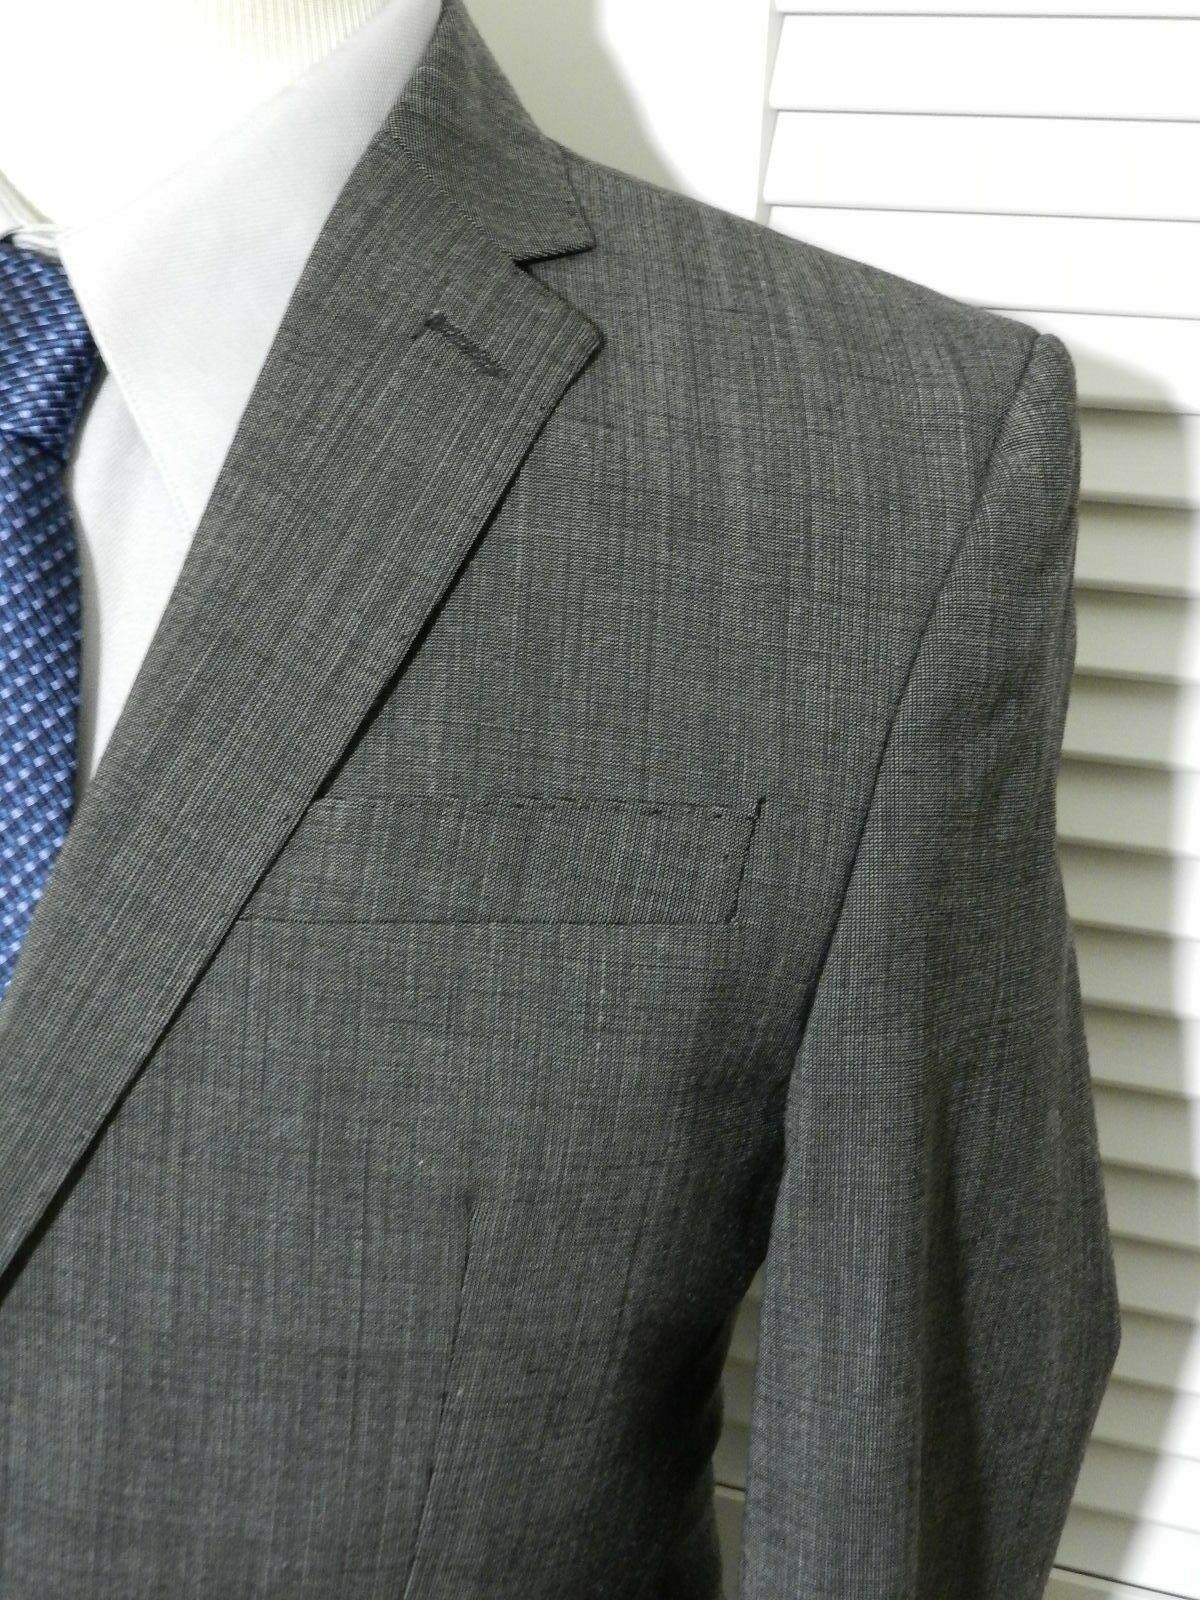 1095 Versace Collection grau Pindot 2 Button Suit 40R 1095